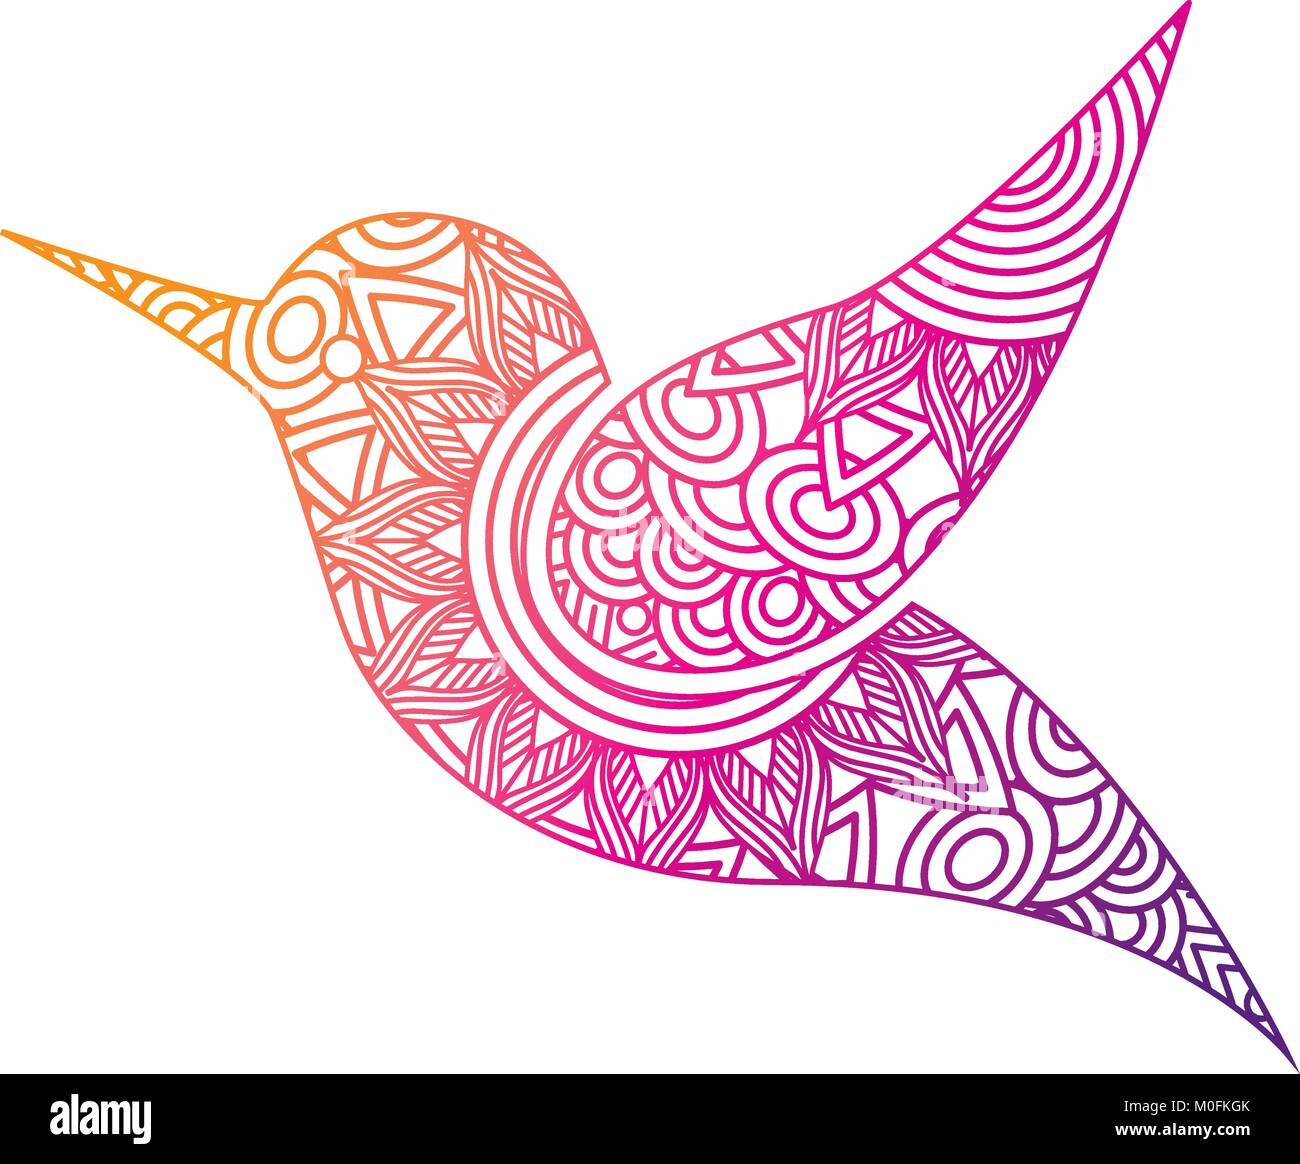 Hummingbird Cartoon Vector Illustration Stock Photos & Hummingbird ...